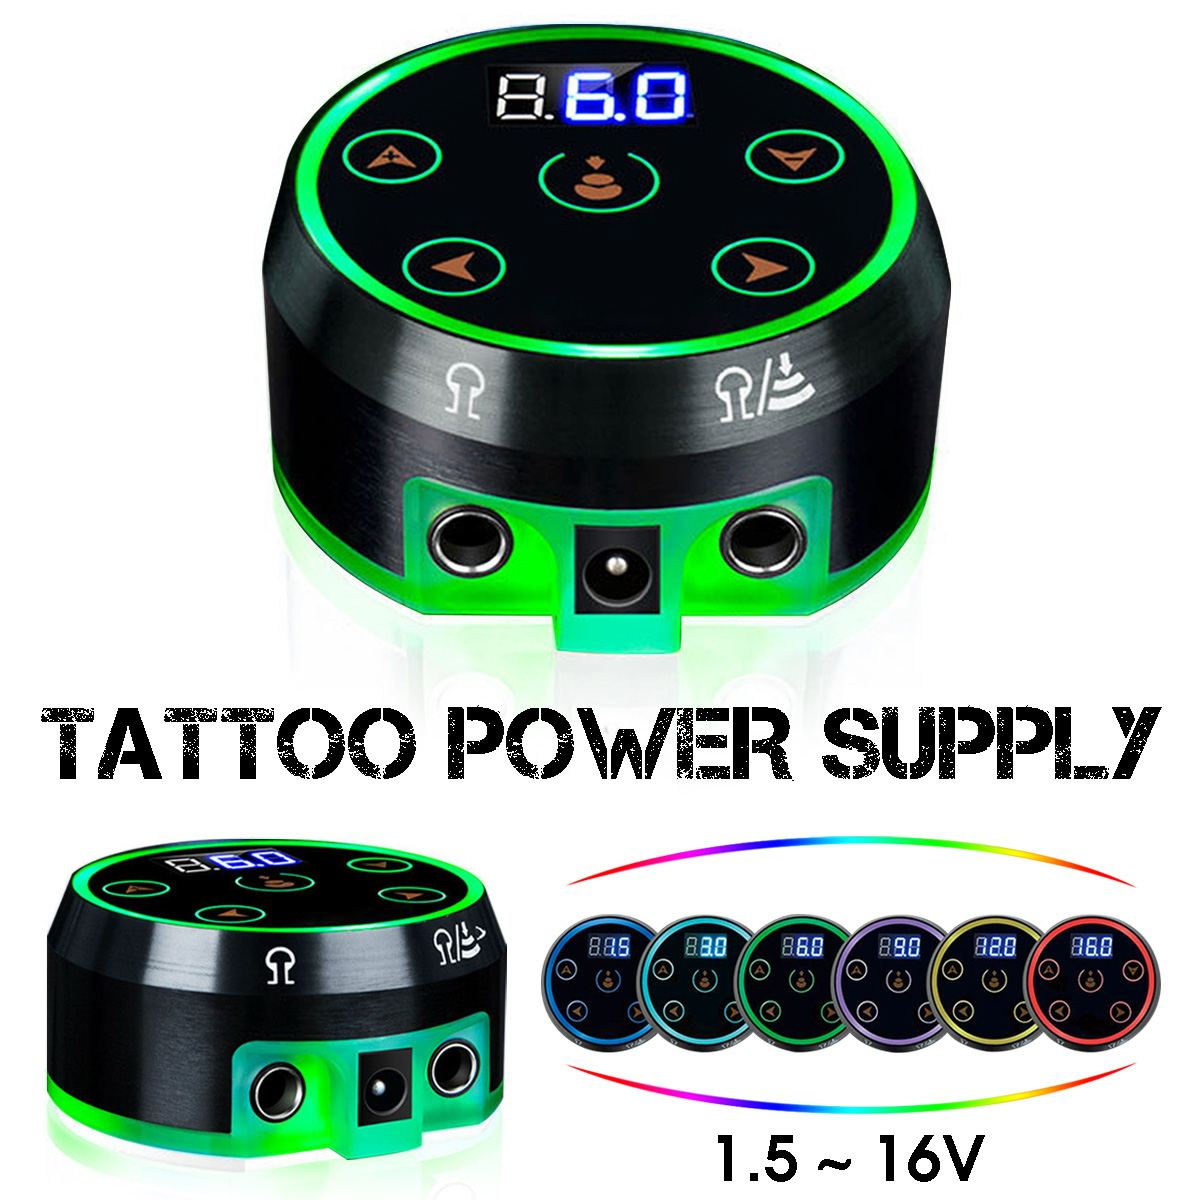 New Professional Mini LCD Display Dual Mode 6 Gears Tattoo Power Supply for <font><b>AURORA</b></font> II Tattoo Machines With Power Adaptor image